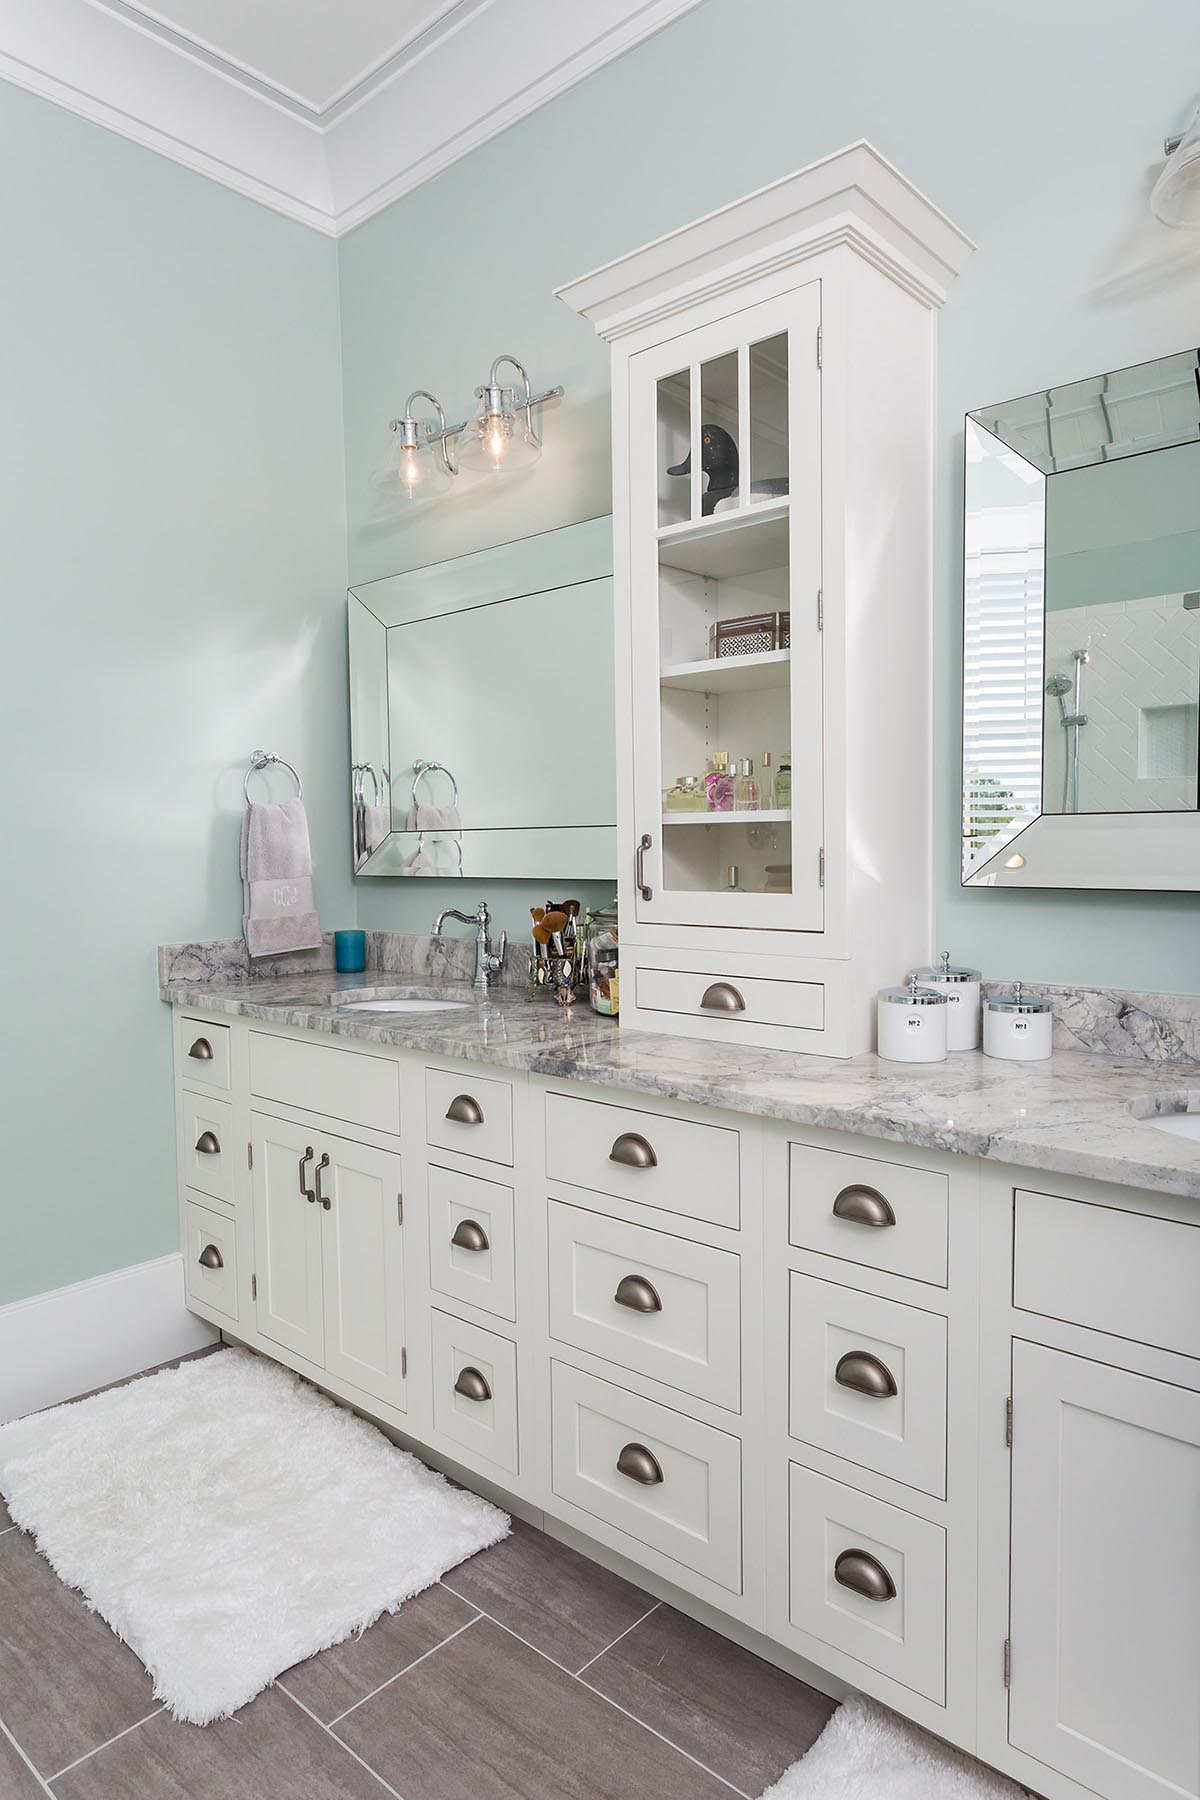 Owners ensuite (master bath) in new home includes custom vanity featuring inset cabinets, glass display case stacked on counter and gray marble vanity to with undermount sinks and vintage-look light fixtures.